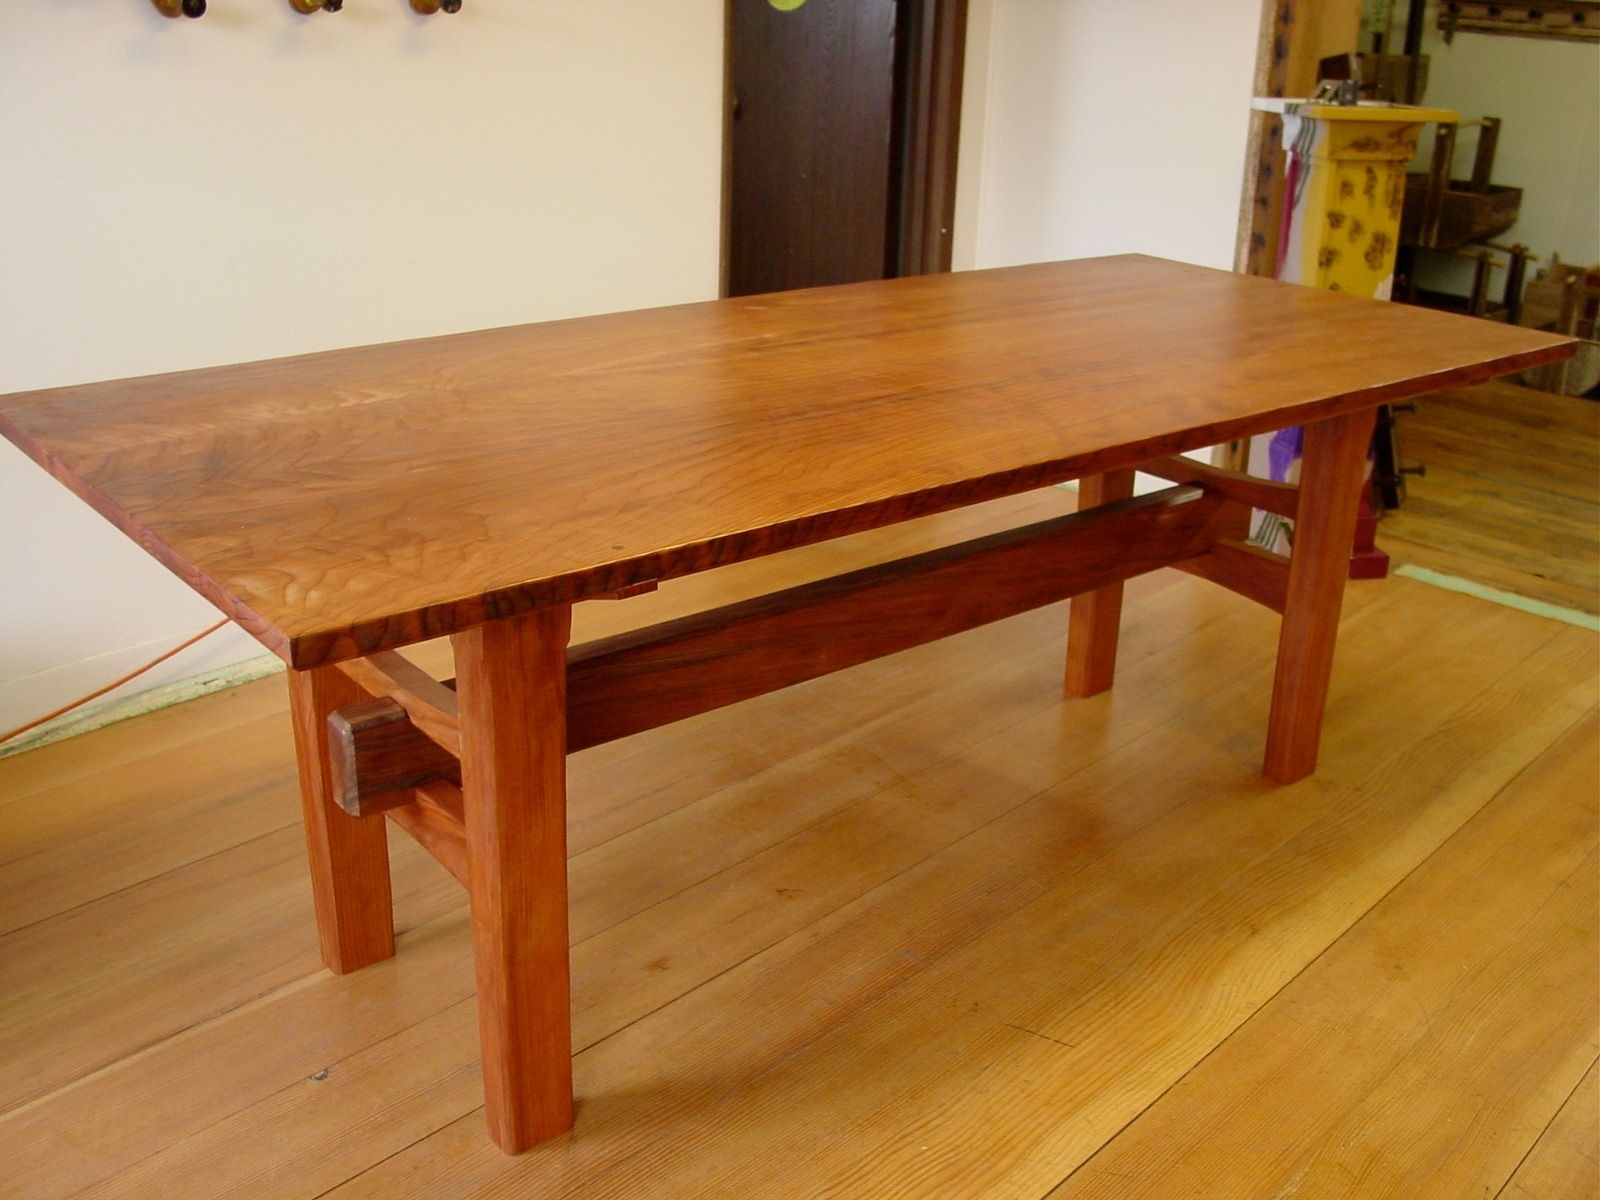 from Heritage Salvage, Custom Made Redwood Table with Japanese Joinery